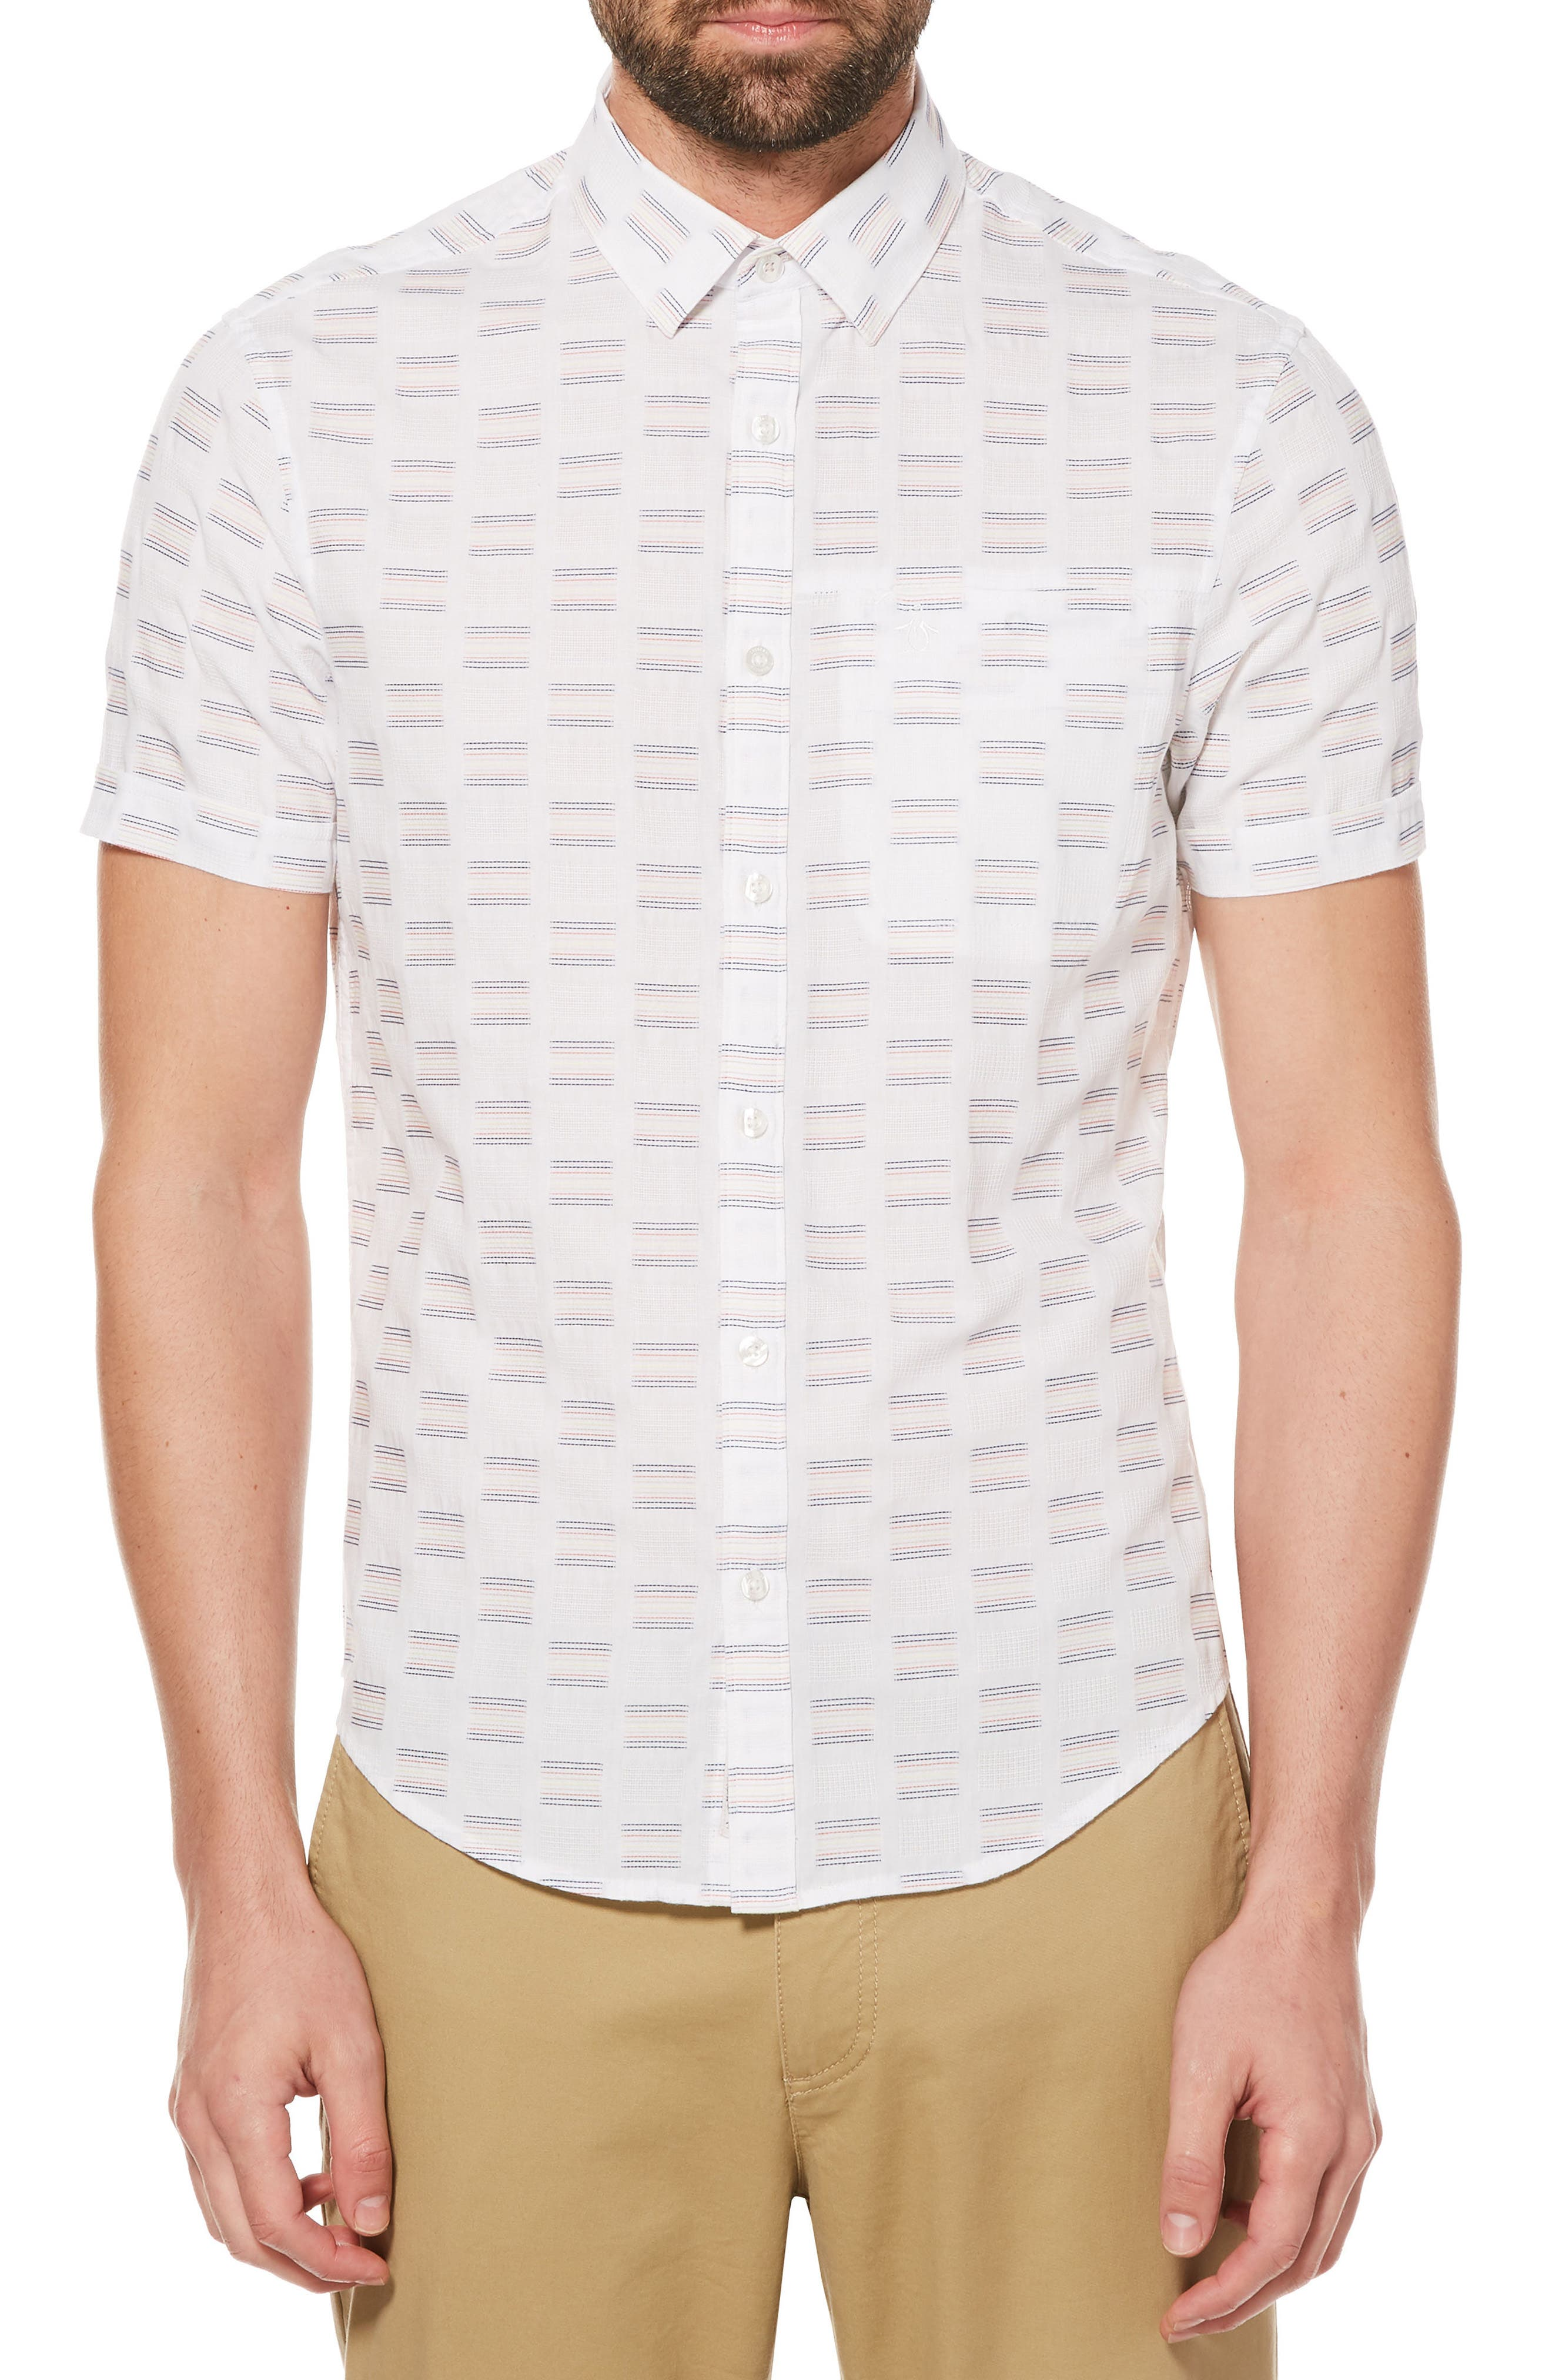 Main Image - Original Penguin 8-Bit Dobby Shirt